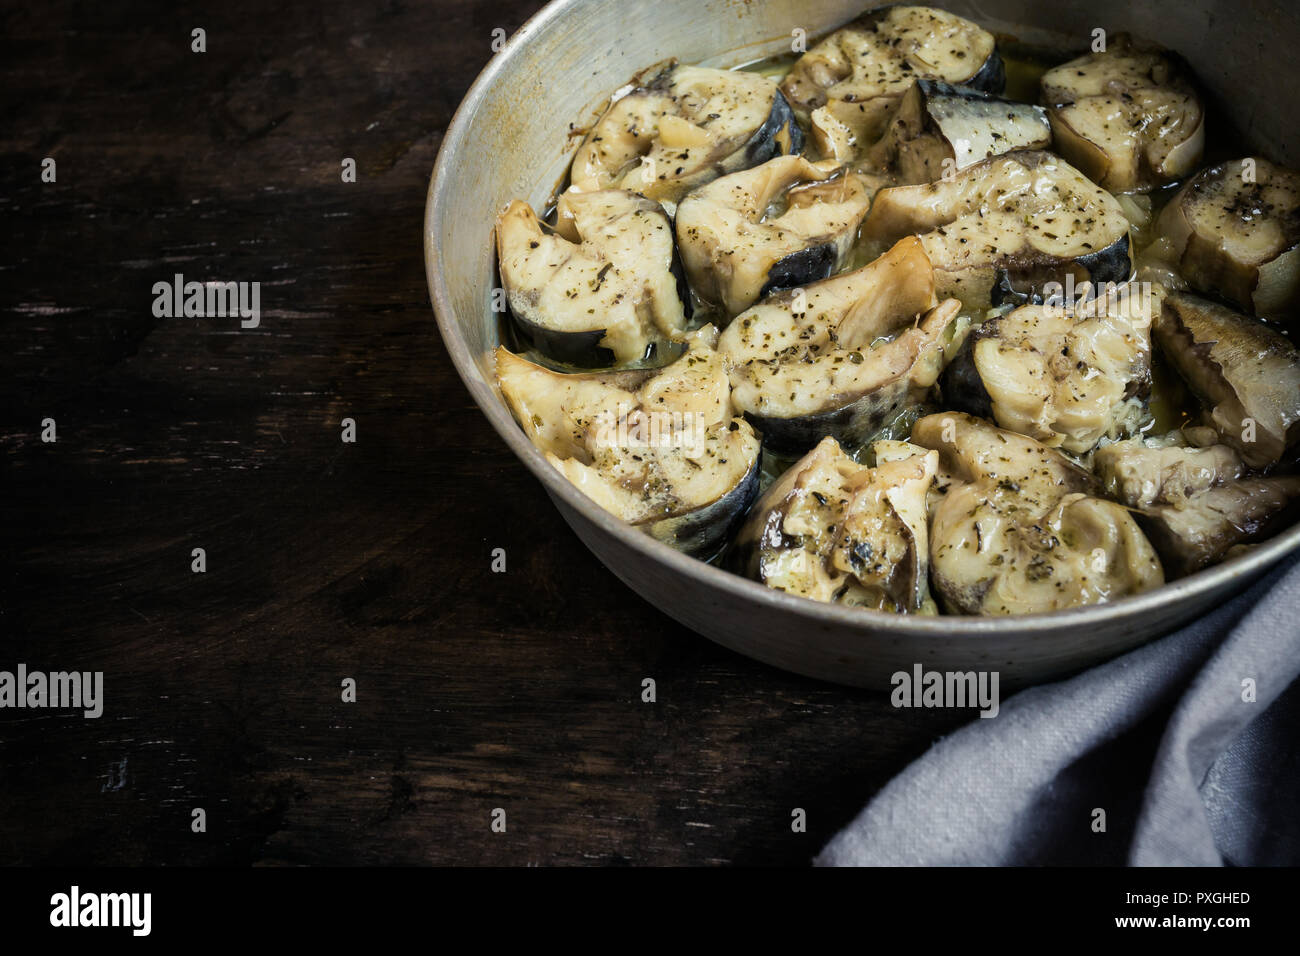 Baked fish mackerel in a pan, on a wooden background. Slices of baked Atlantic mackerel/ - Stock Image